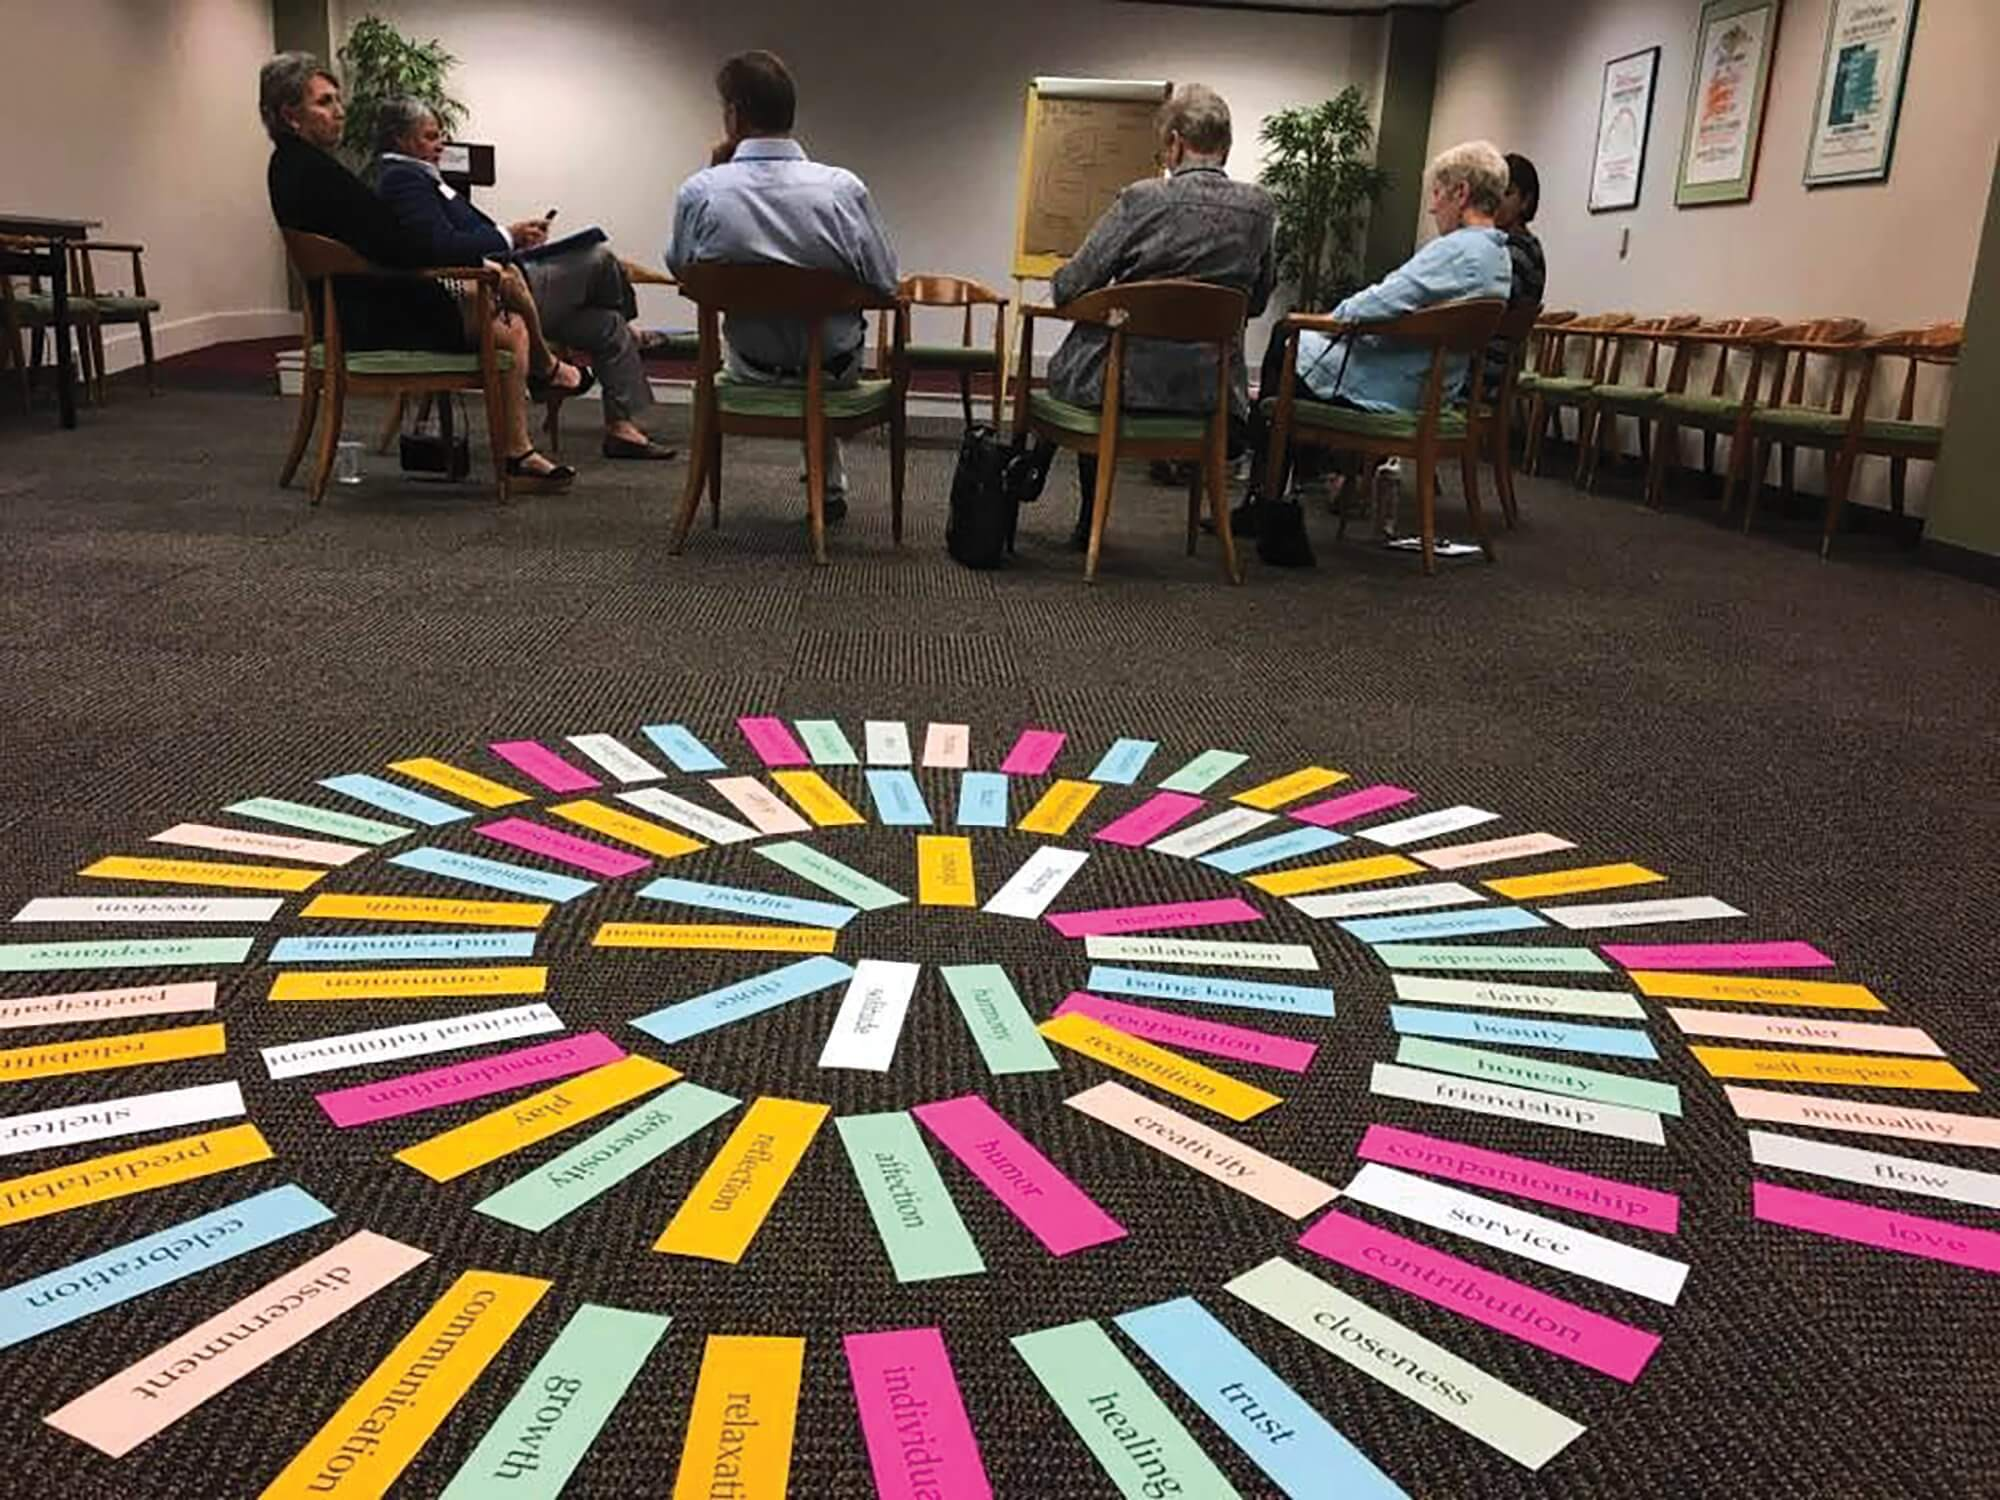 Guests at the Institute for Spirituality and Health participate in a mindful self-compassion training event that addresses different human characteristics and needs.